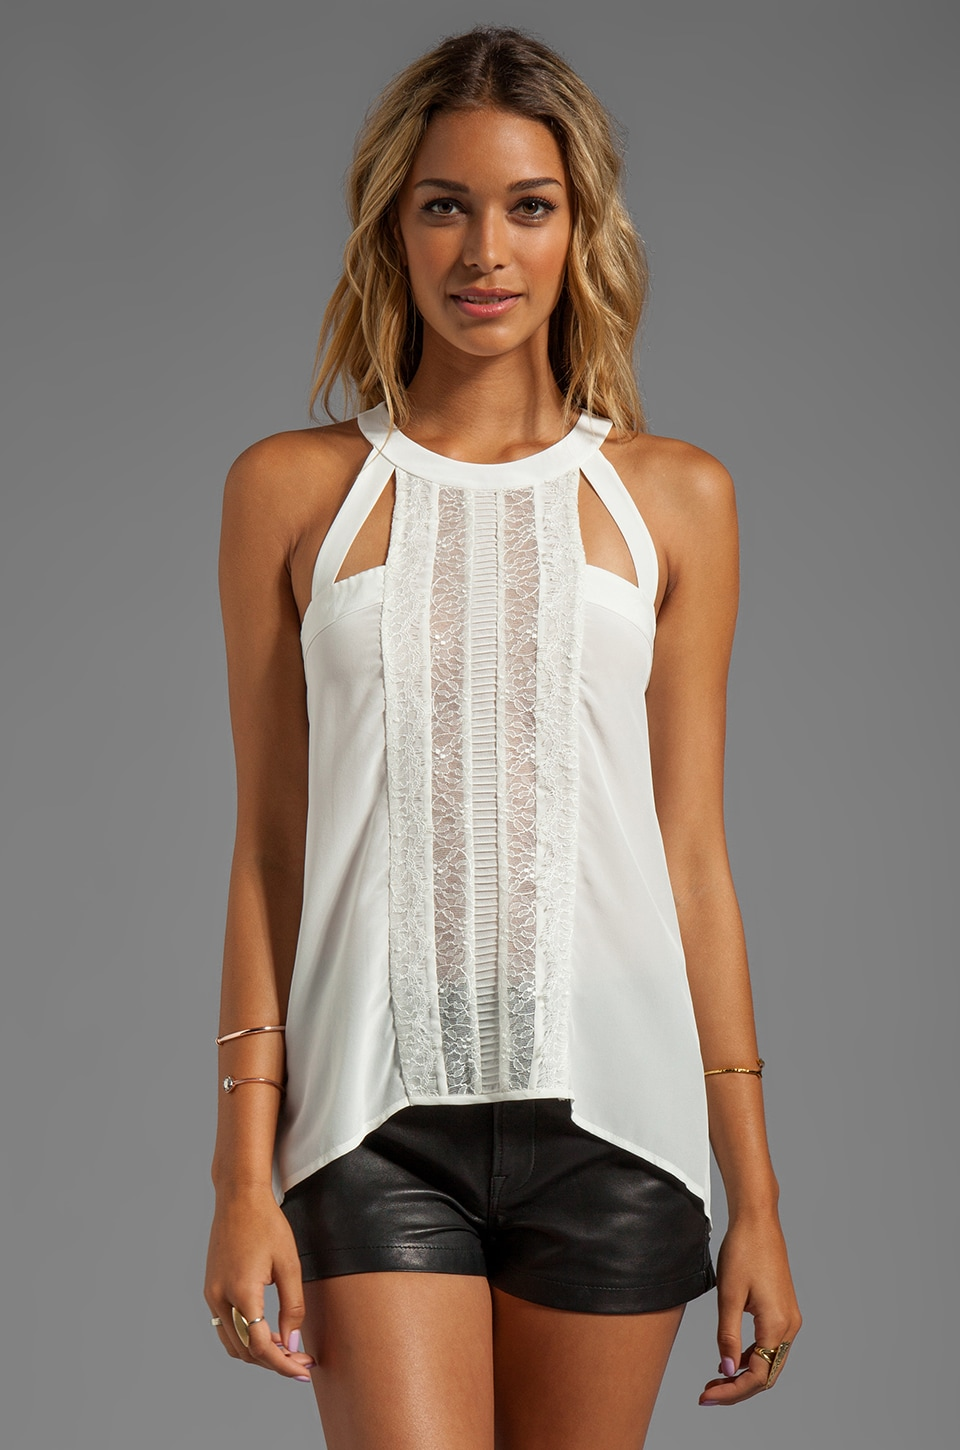 BCBGMAXAZRIA Lace Top in Off White